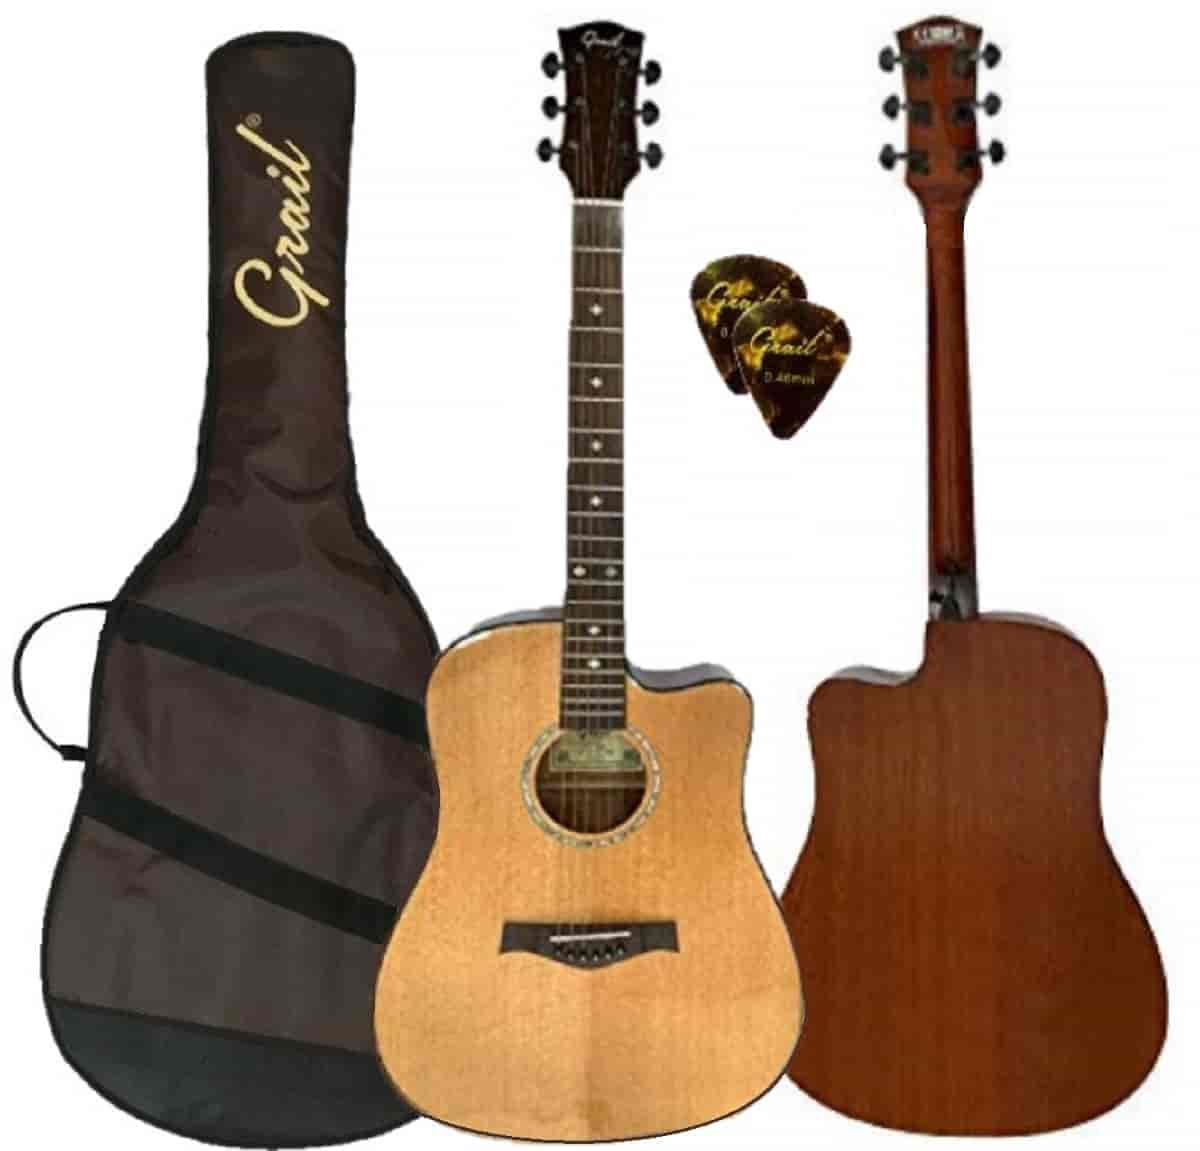 Grail D500C Acoustic Guitar Cutaway Solid Spruce Top - Performance Edition || Natural || (FREE High Quality Padded Bag & 2 Picks)